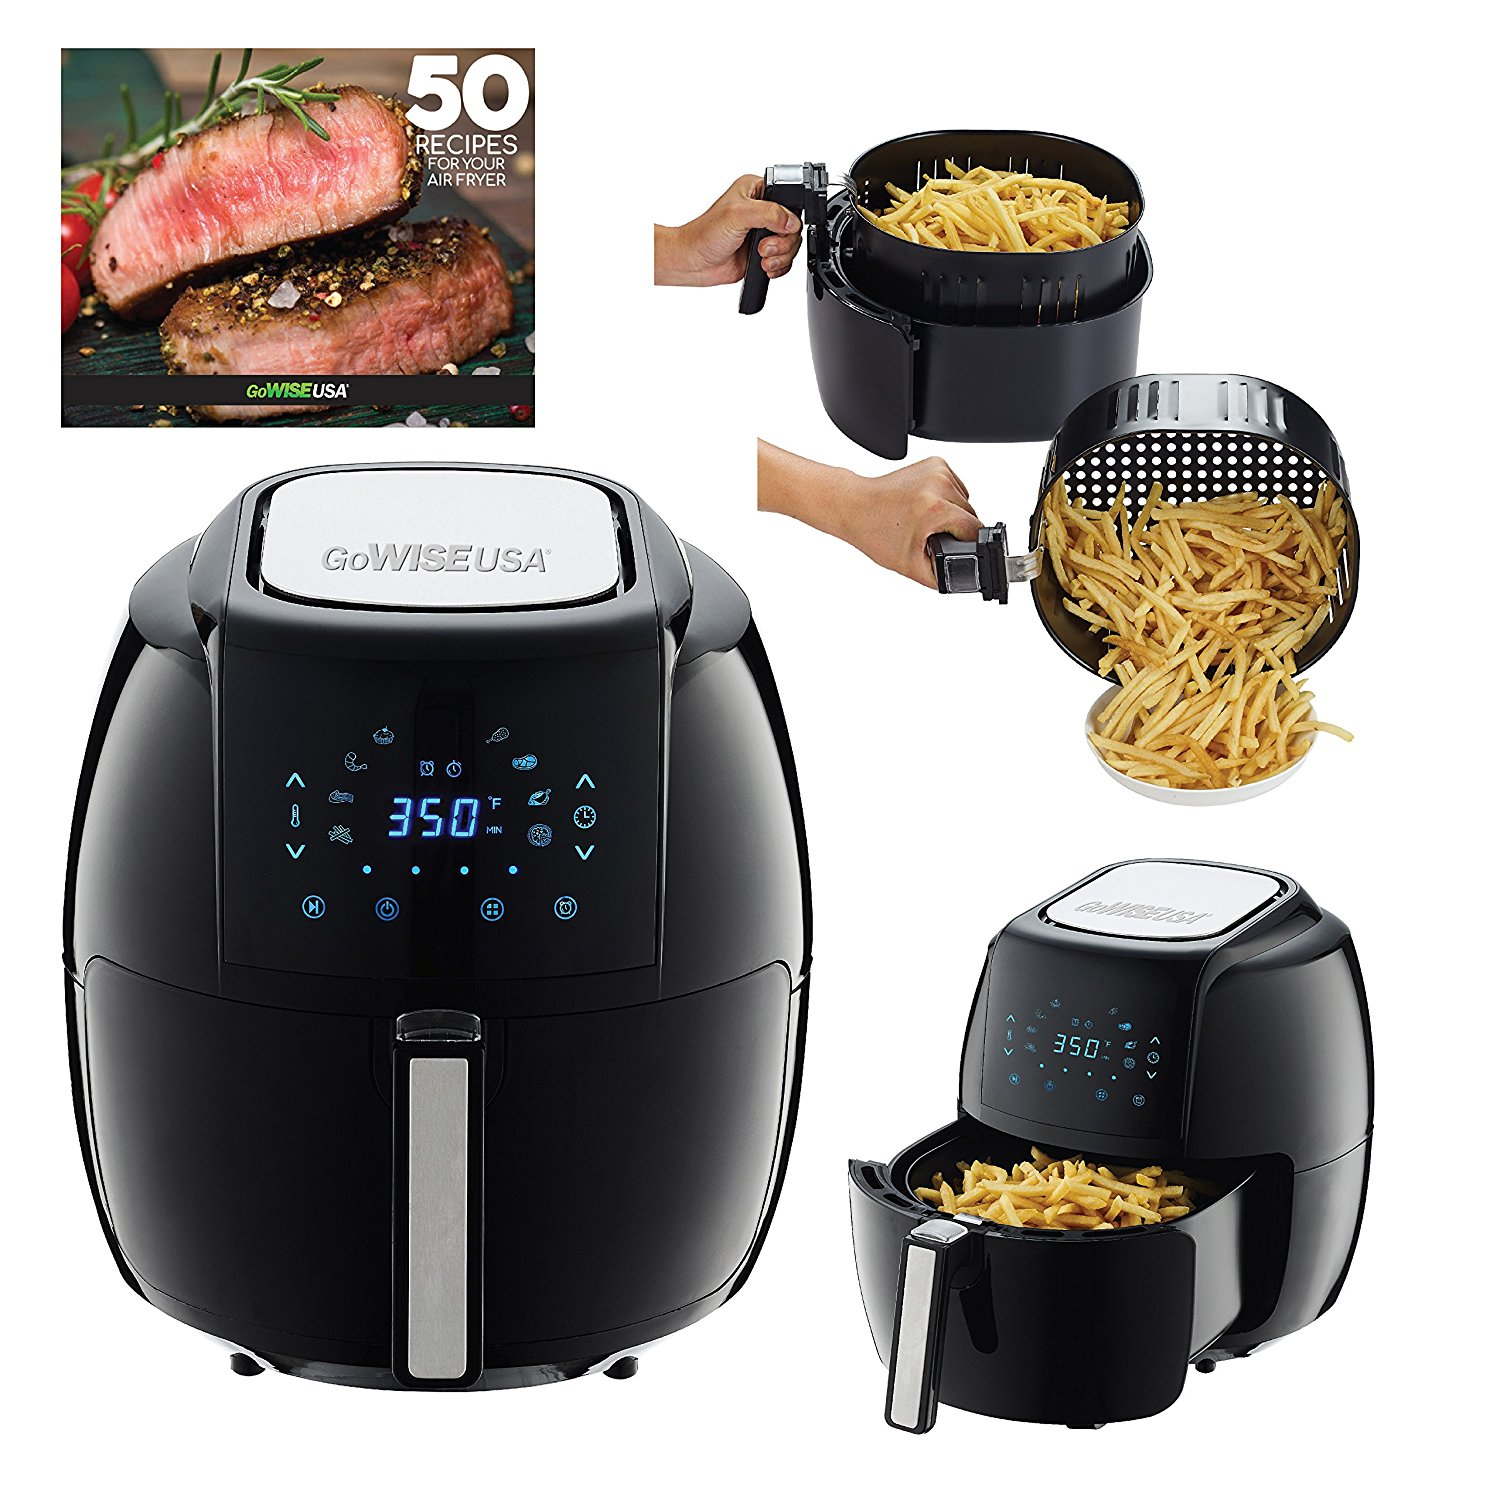 gowise usa 5 8 qt programmable 8 in 1 air fryer xl 80. Black Bedroom Furniture Sets. Home Design Ideas